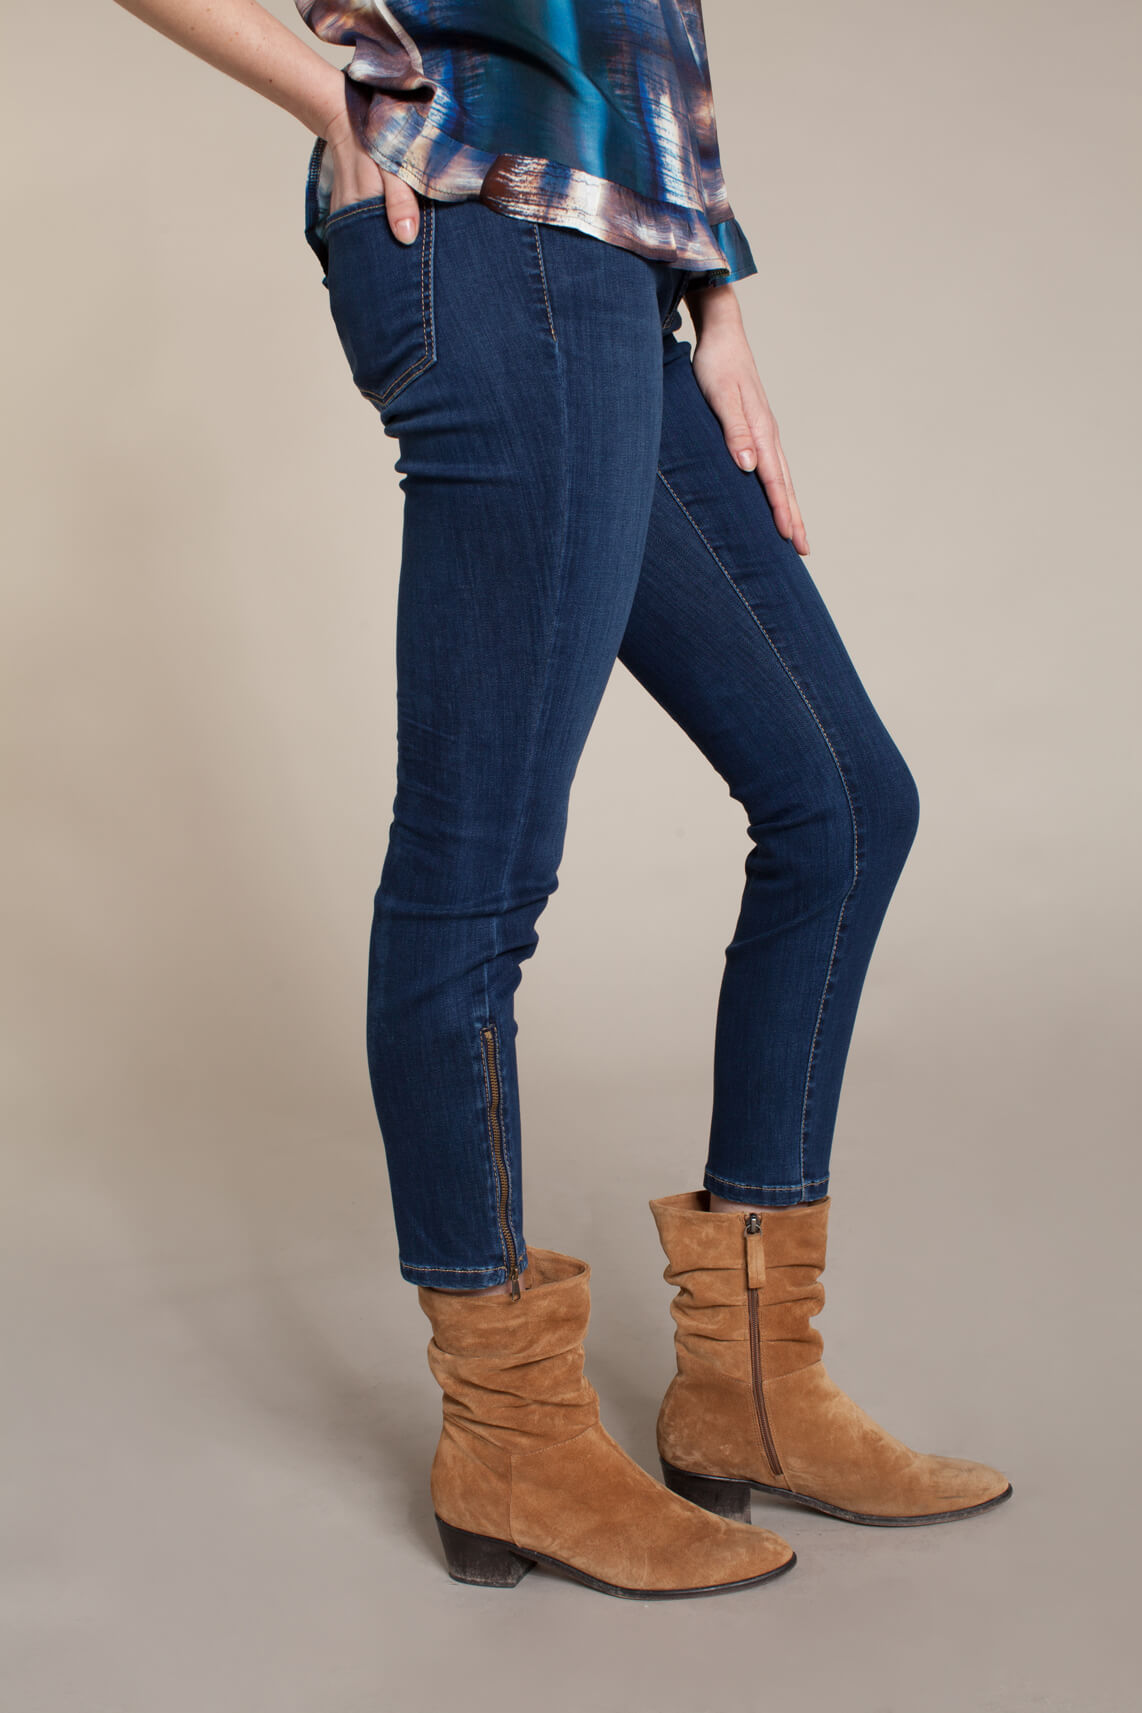 Cambio Dames Parla jeans met rits Blauw